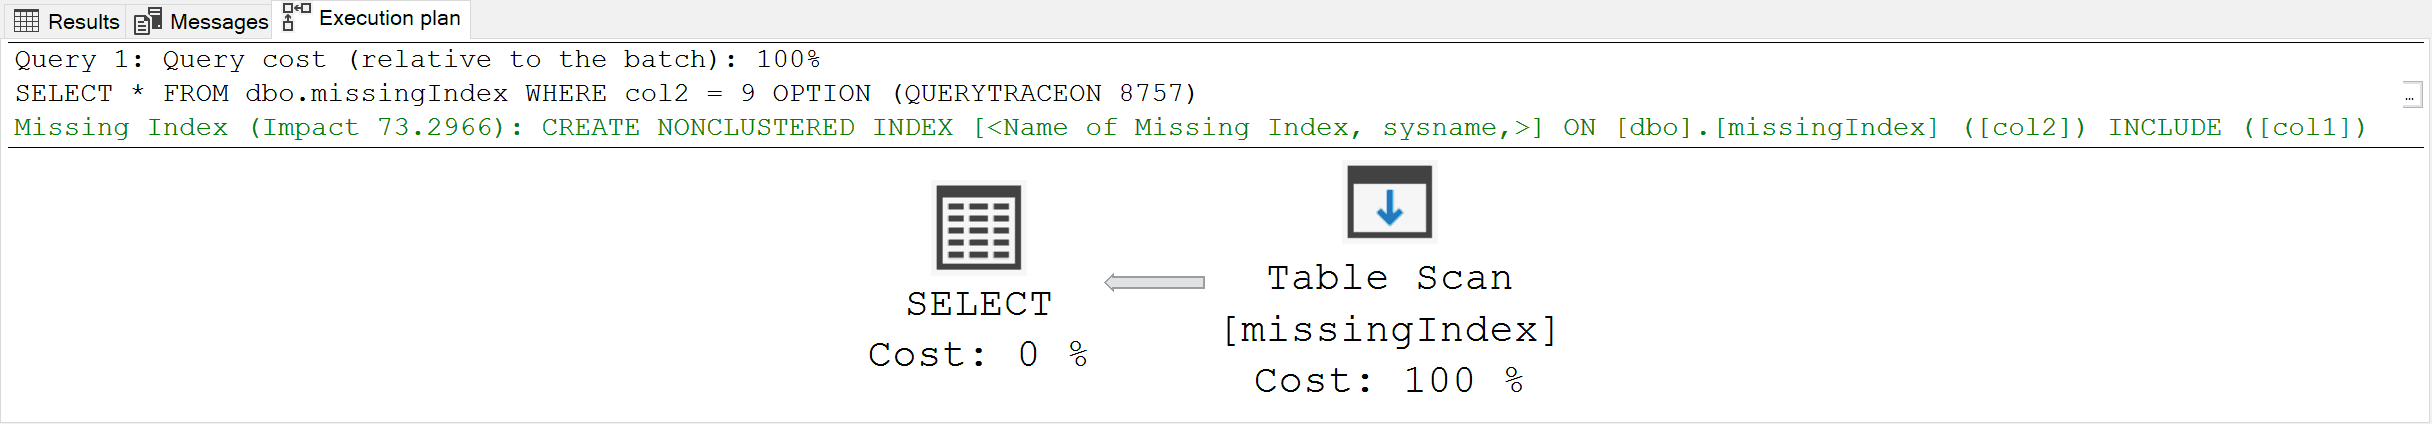 missing-index-feature-recommendation-execution-plan